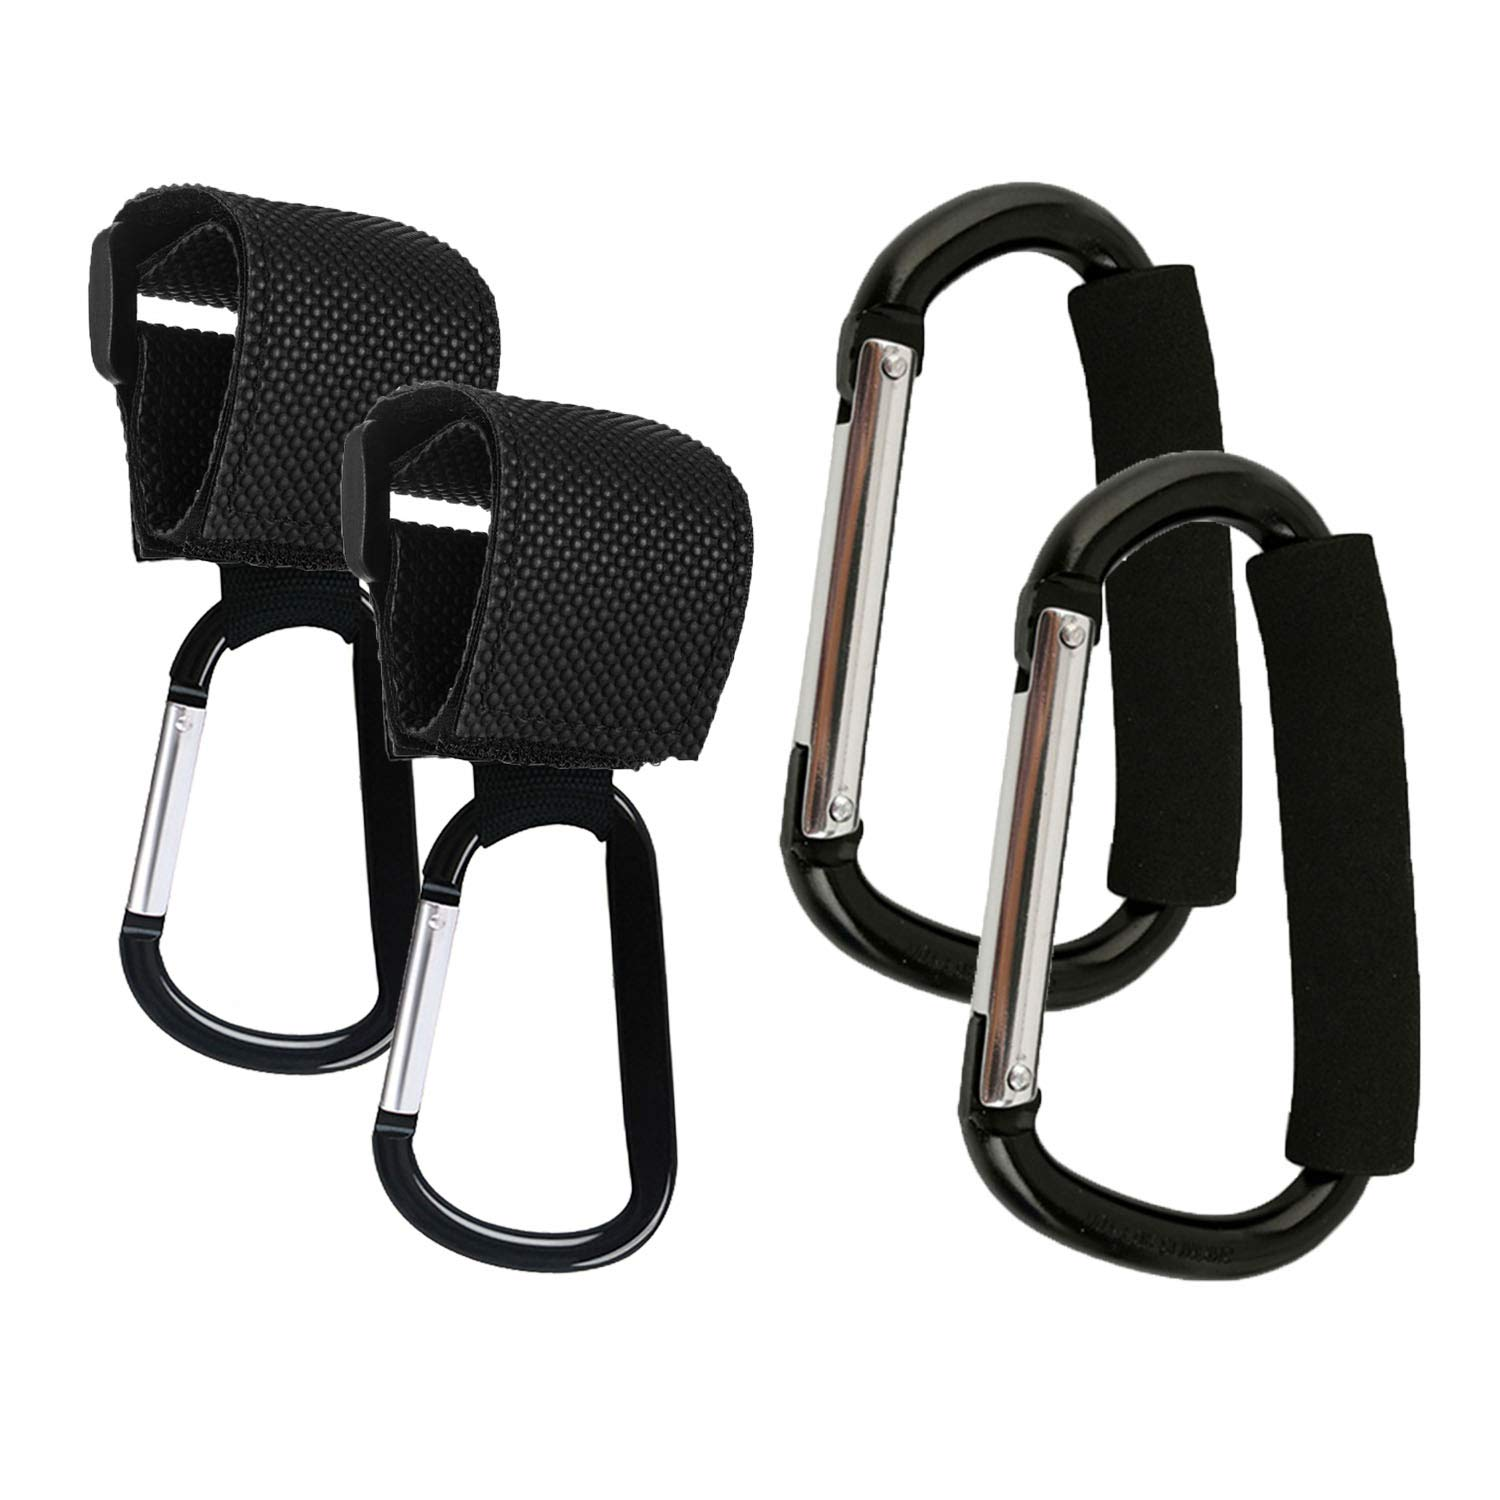 Stroller Hooks, 4 Pack Strap Hooks and X-Large Stroller Organizer Hook Clip for Purse Shopping & Diaper Bags by VPAL